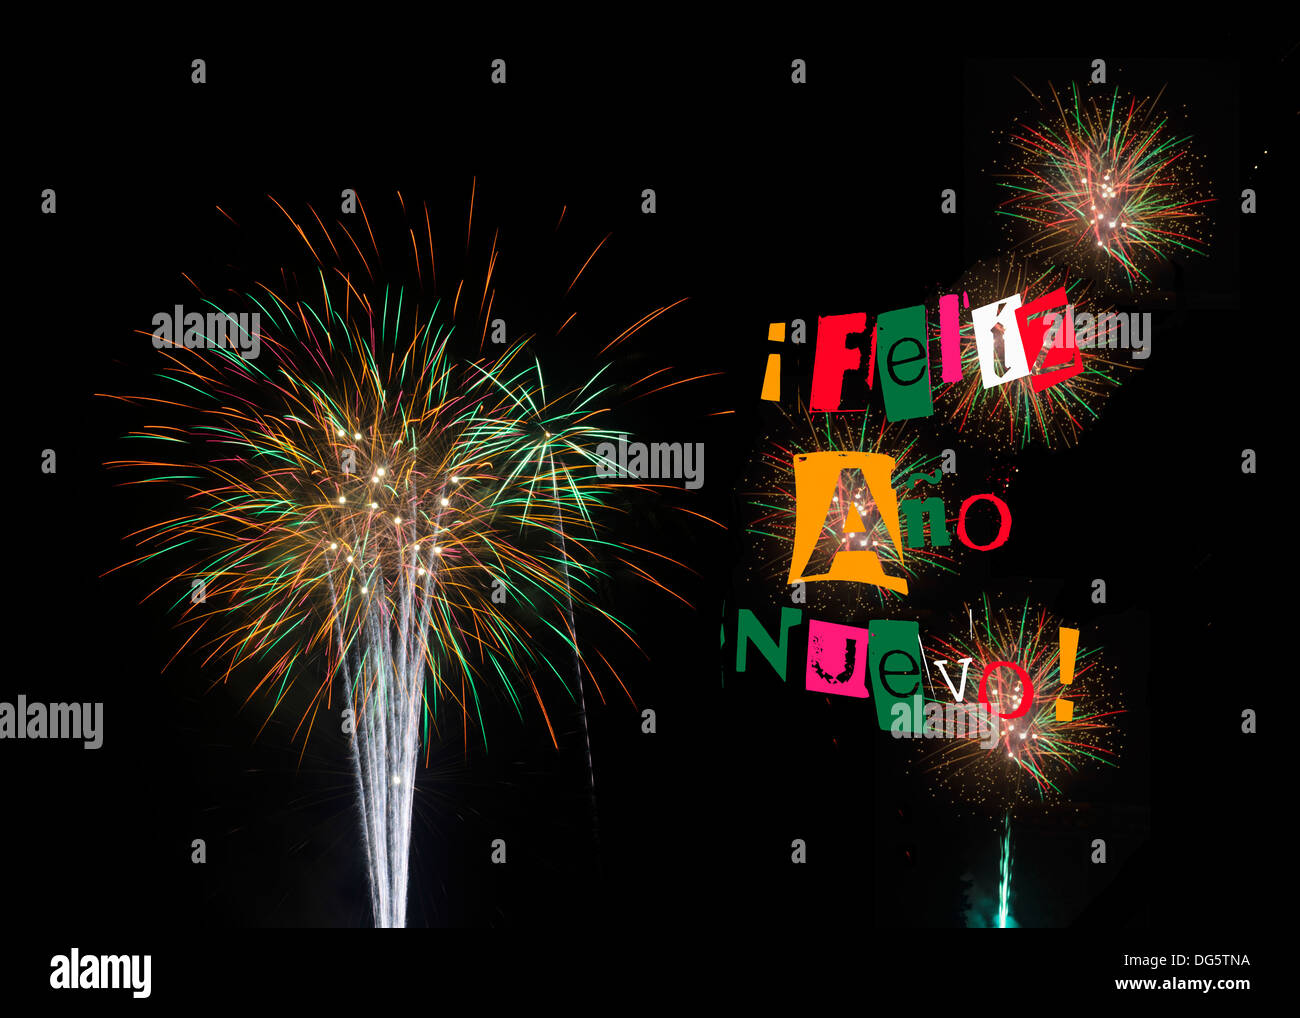 Happy New Year 2014 colorful colourful fireworks on black background. Also with 2014 see DG5TNK and Happy New Year DG5TNC - Stock Image